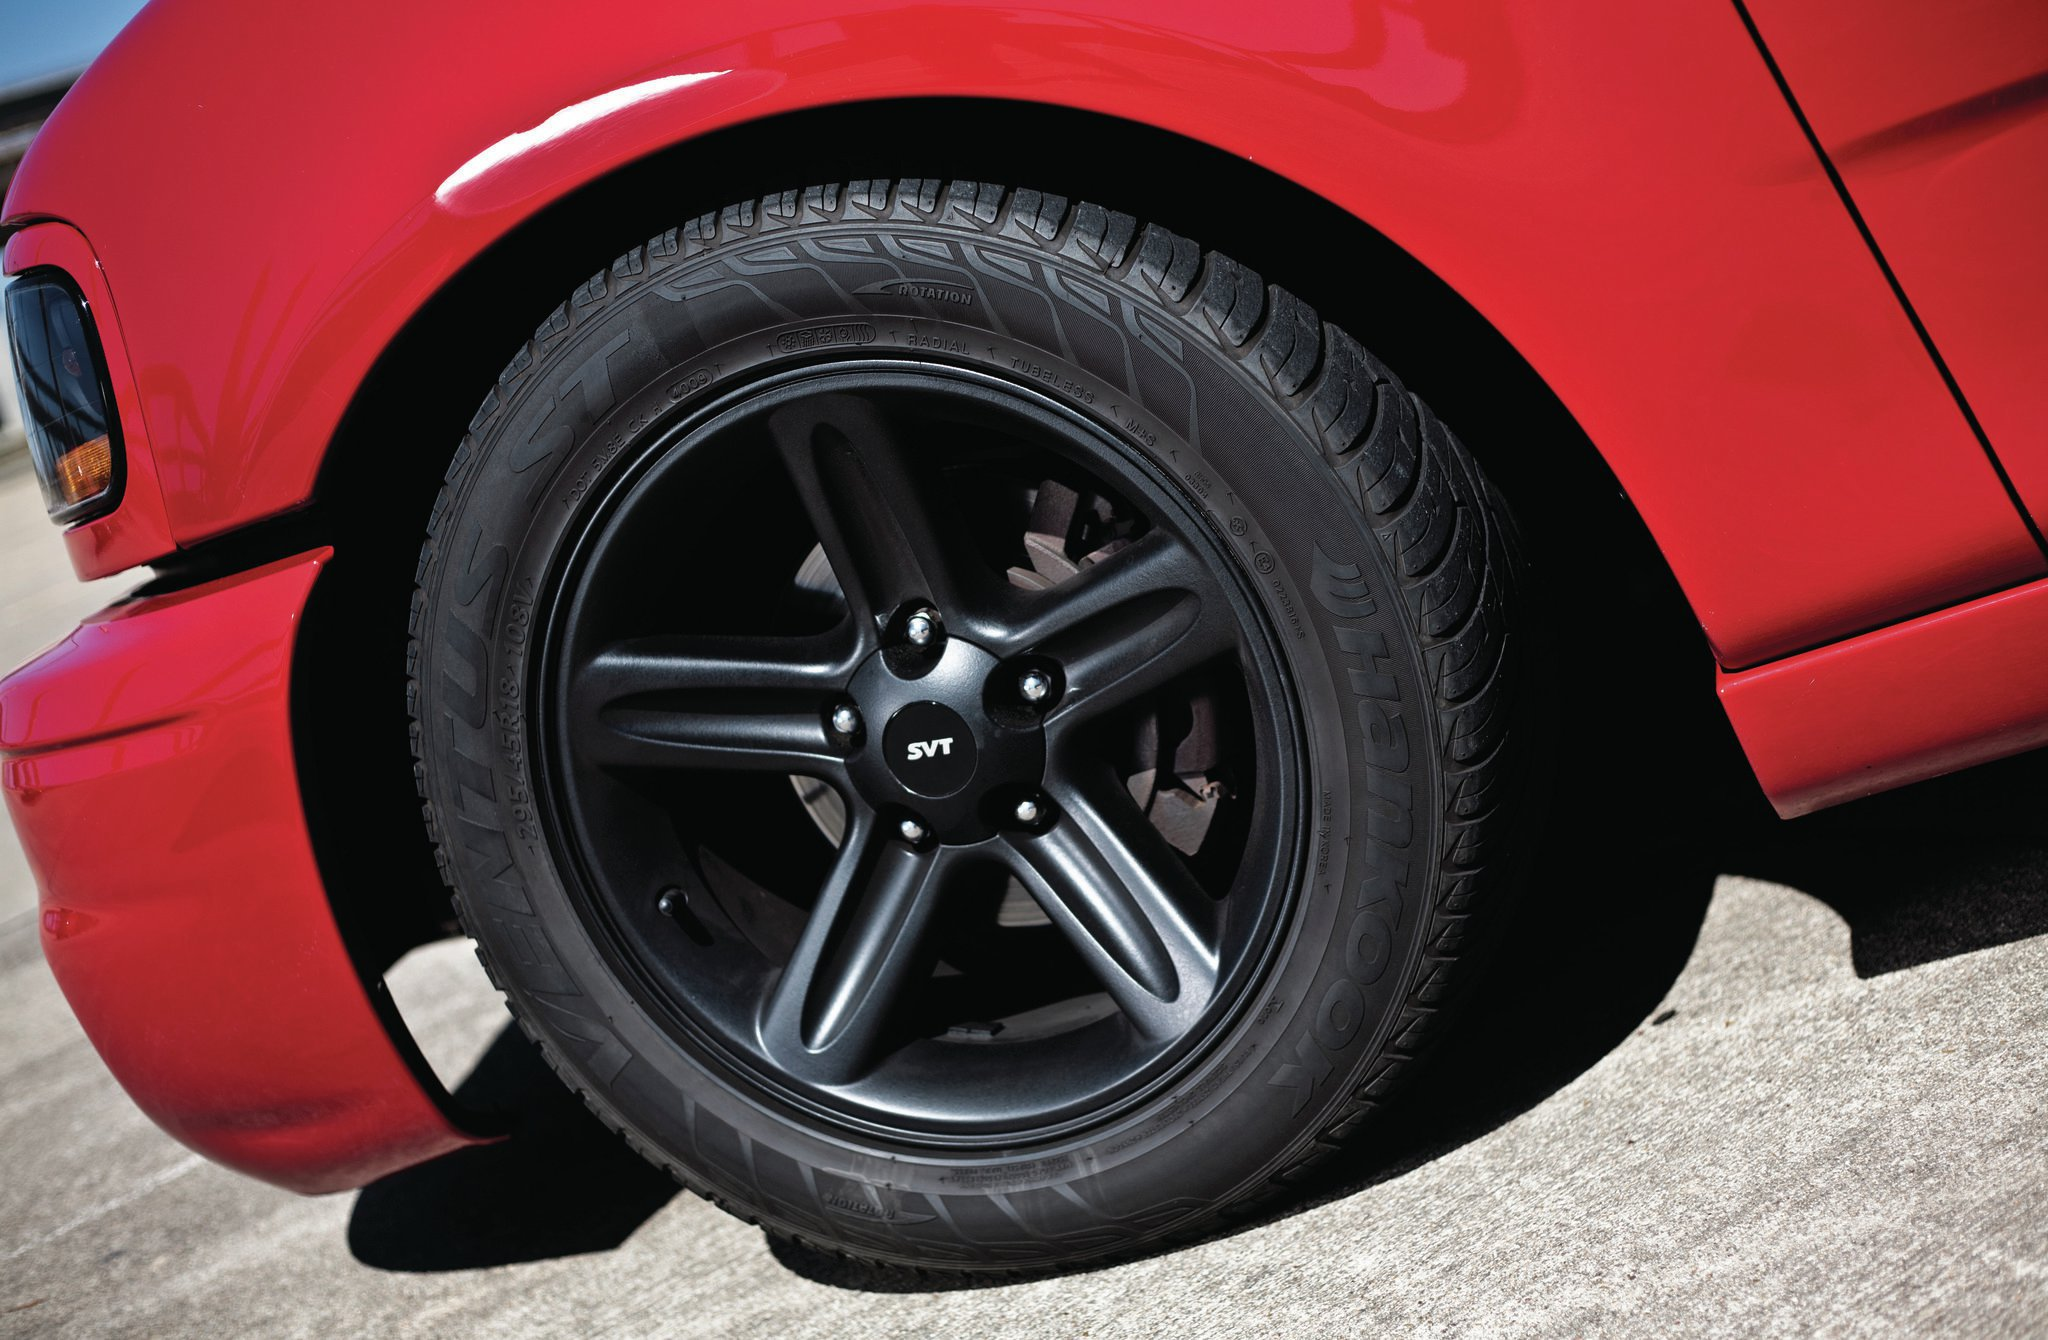 2004 Ford F150 Right Tire